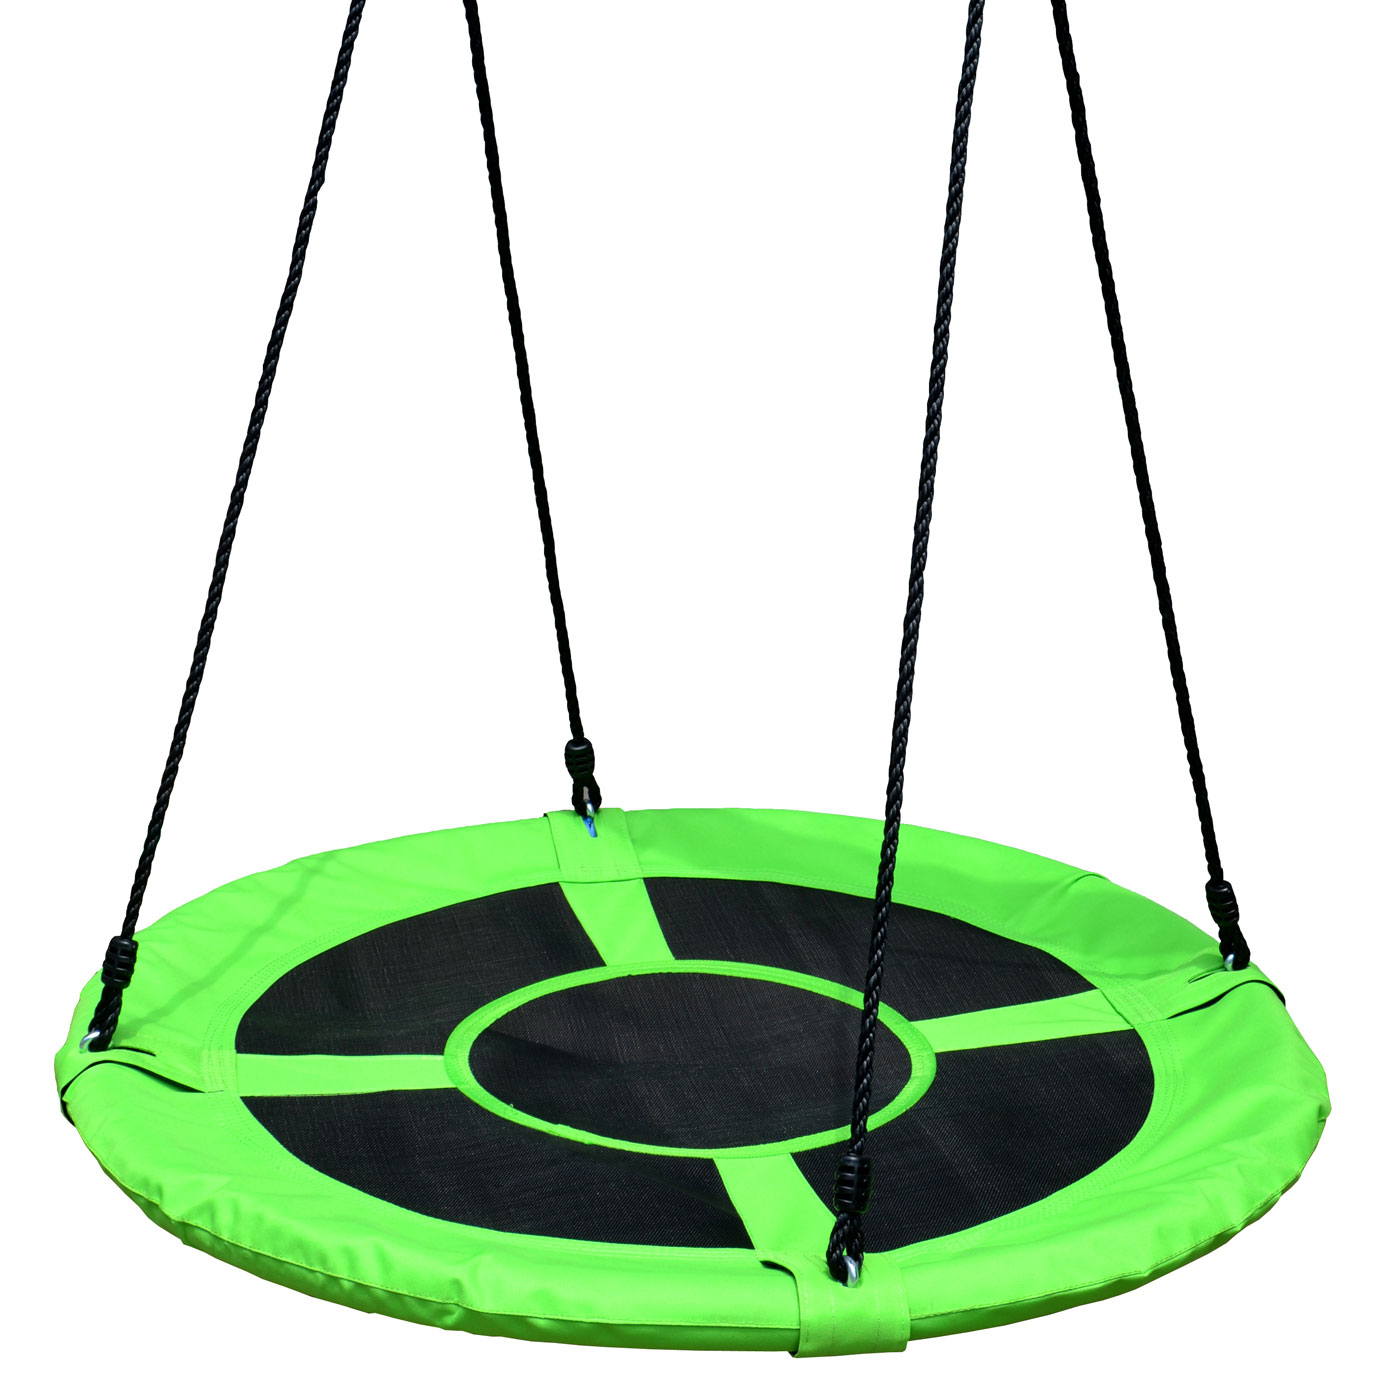 100cm Green Round Mat Nest Swing